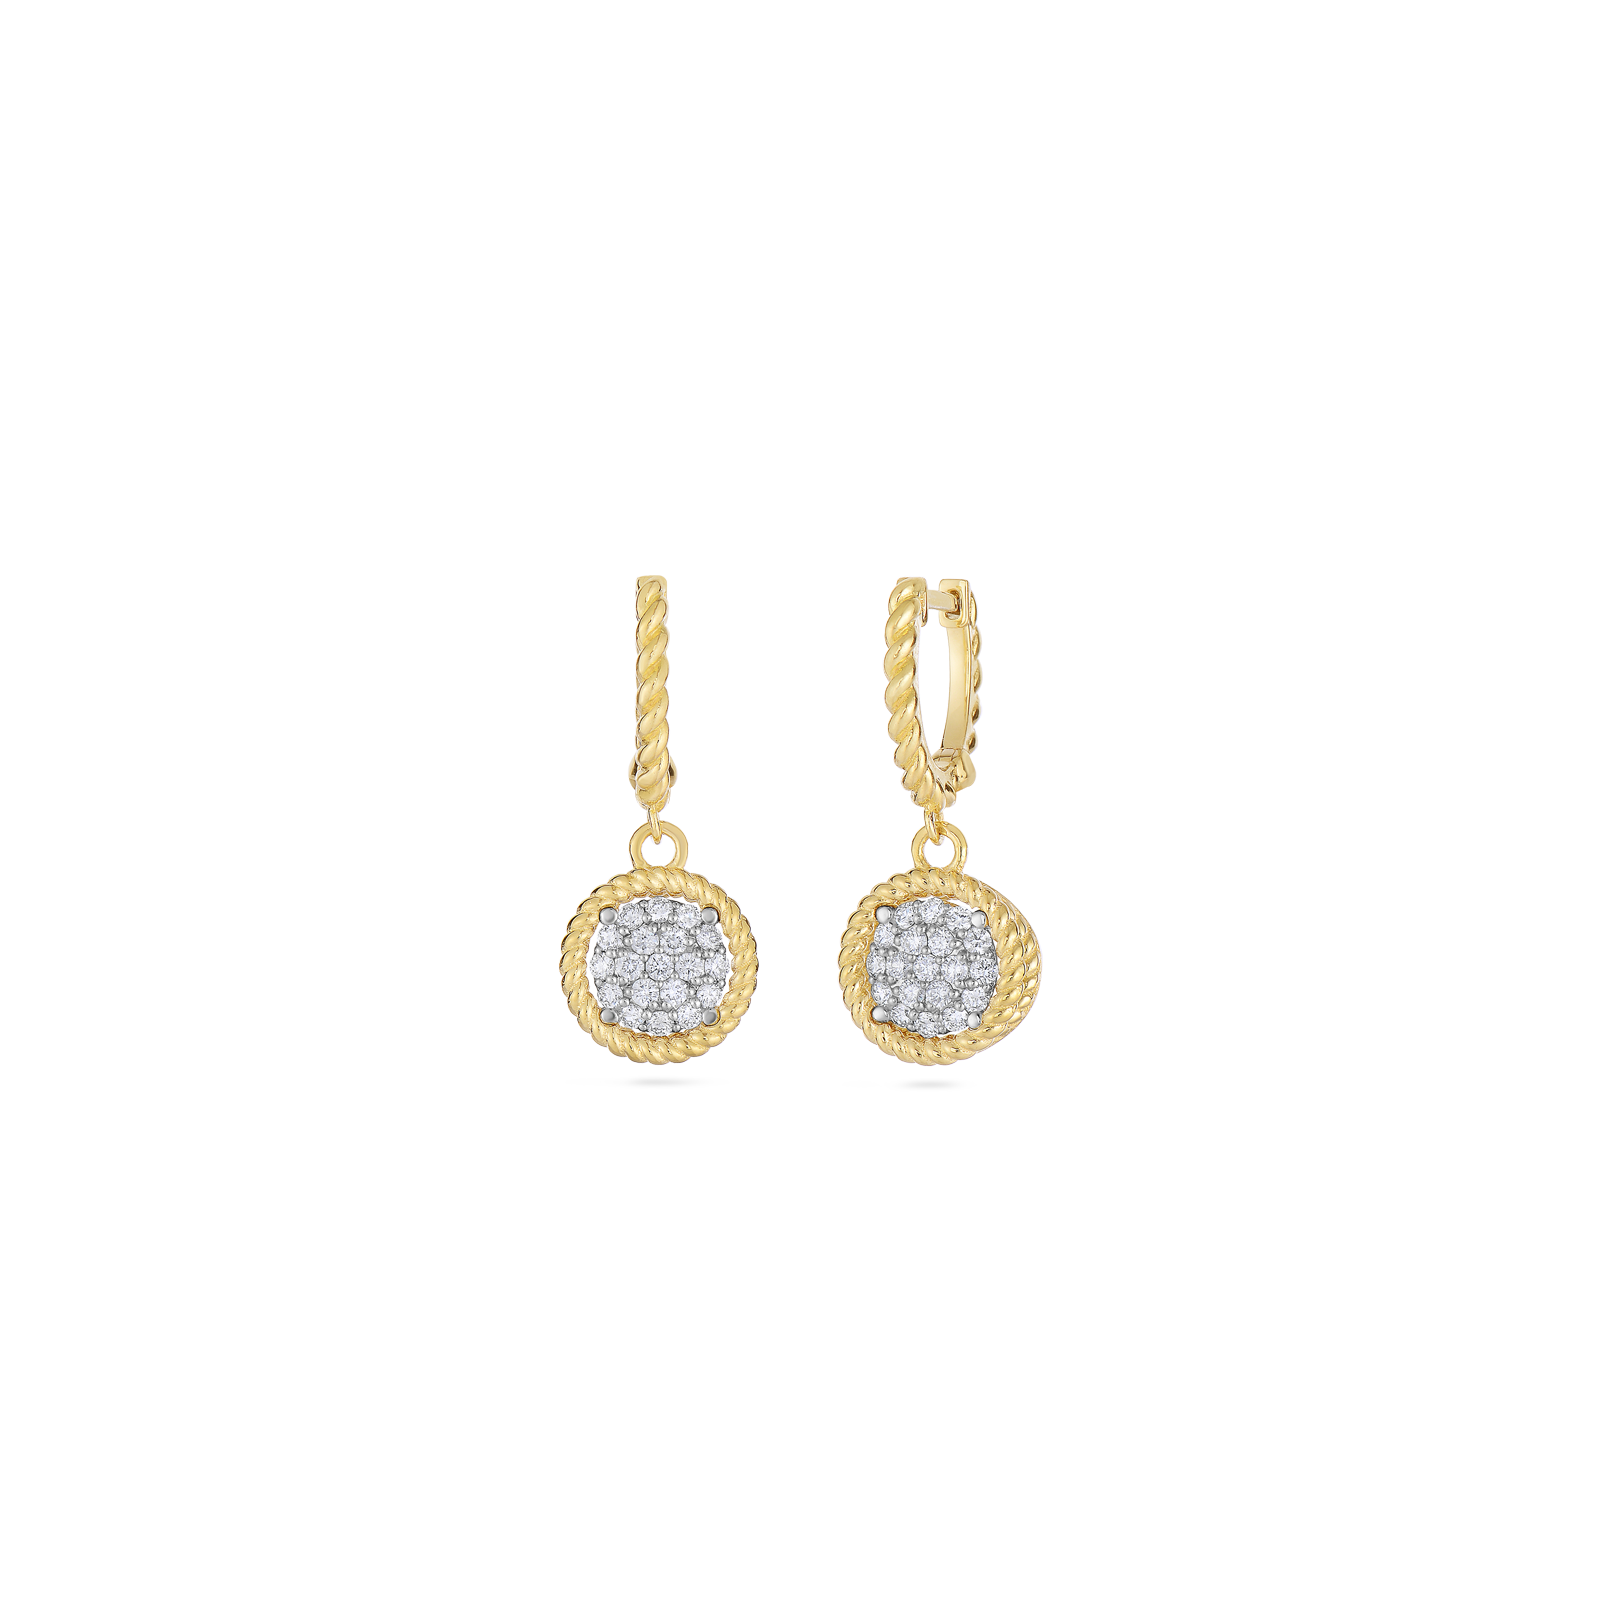 circle constrain zhuu hei urban drop earring outfitters earrings fit d zoom ella shop redesign qlt view circular slide